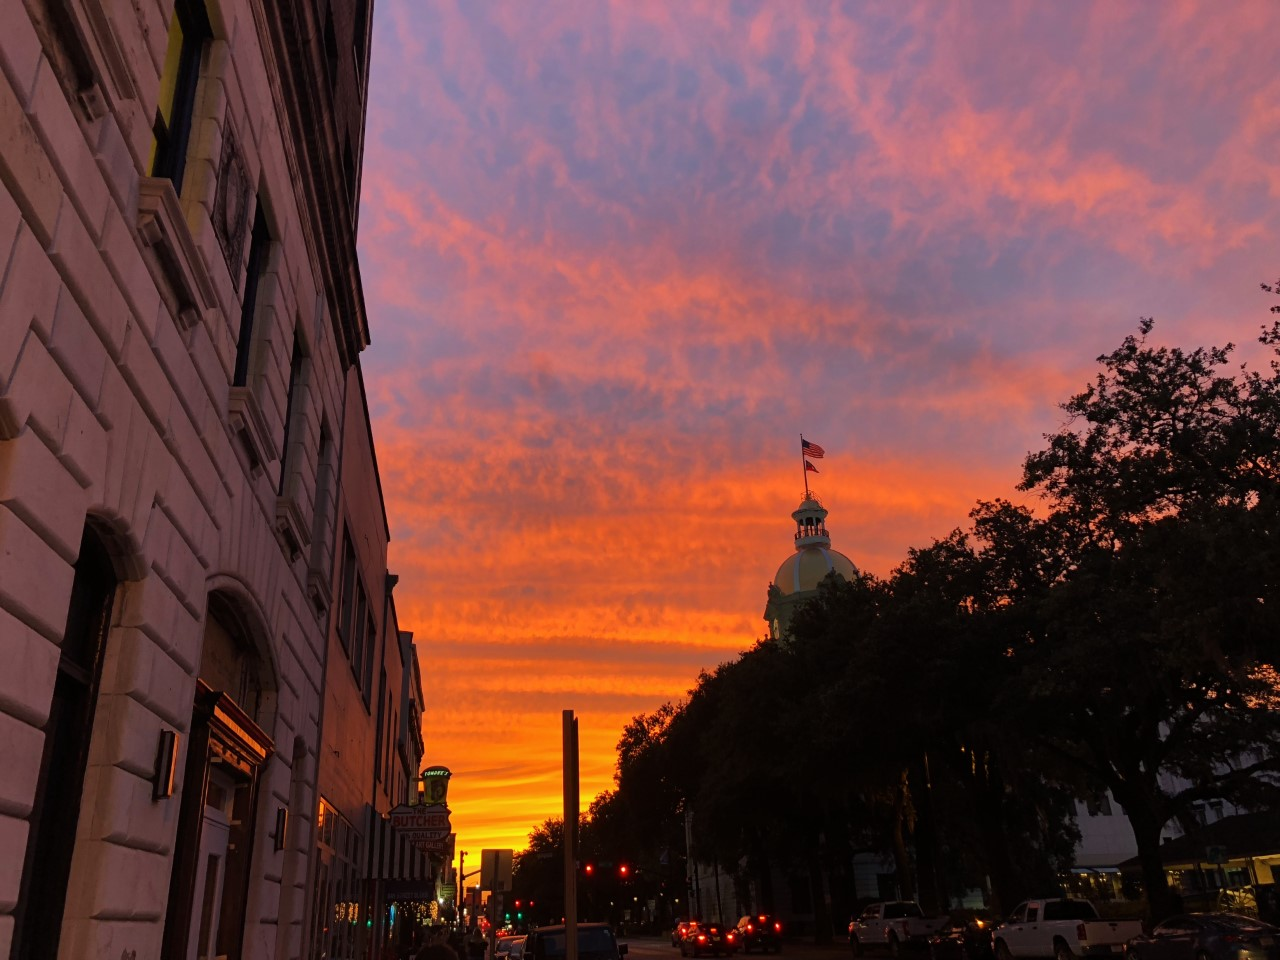 Sunset in Savannah